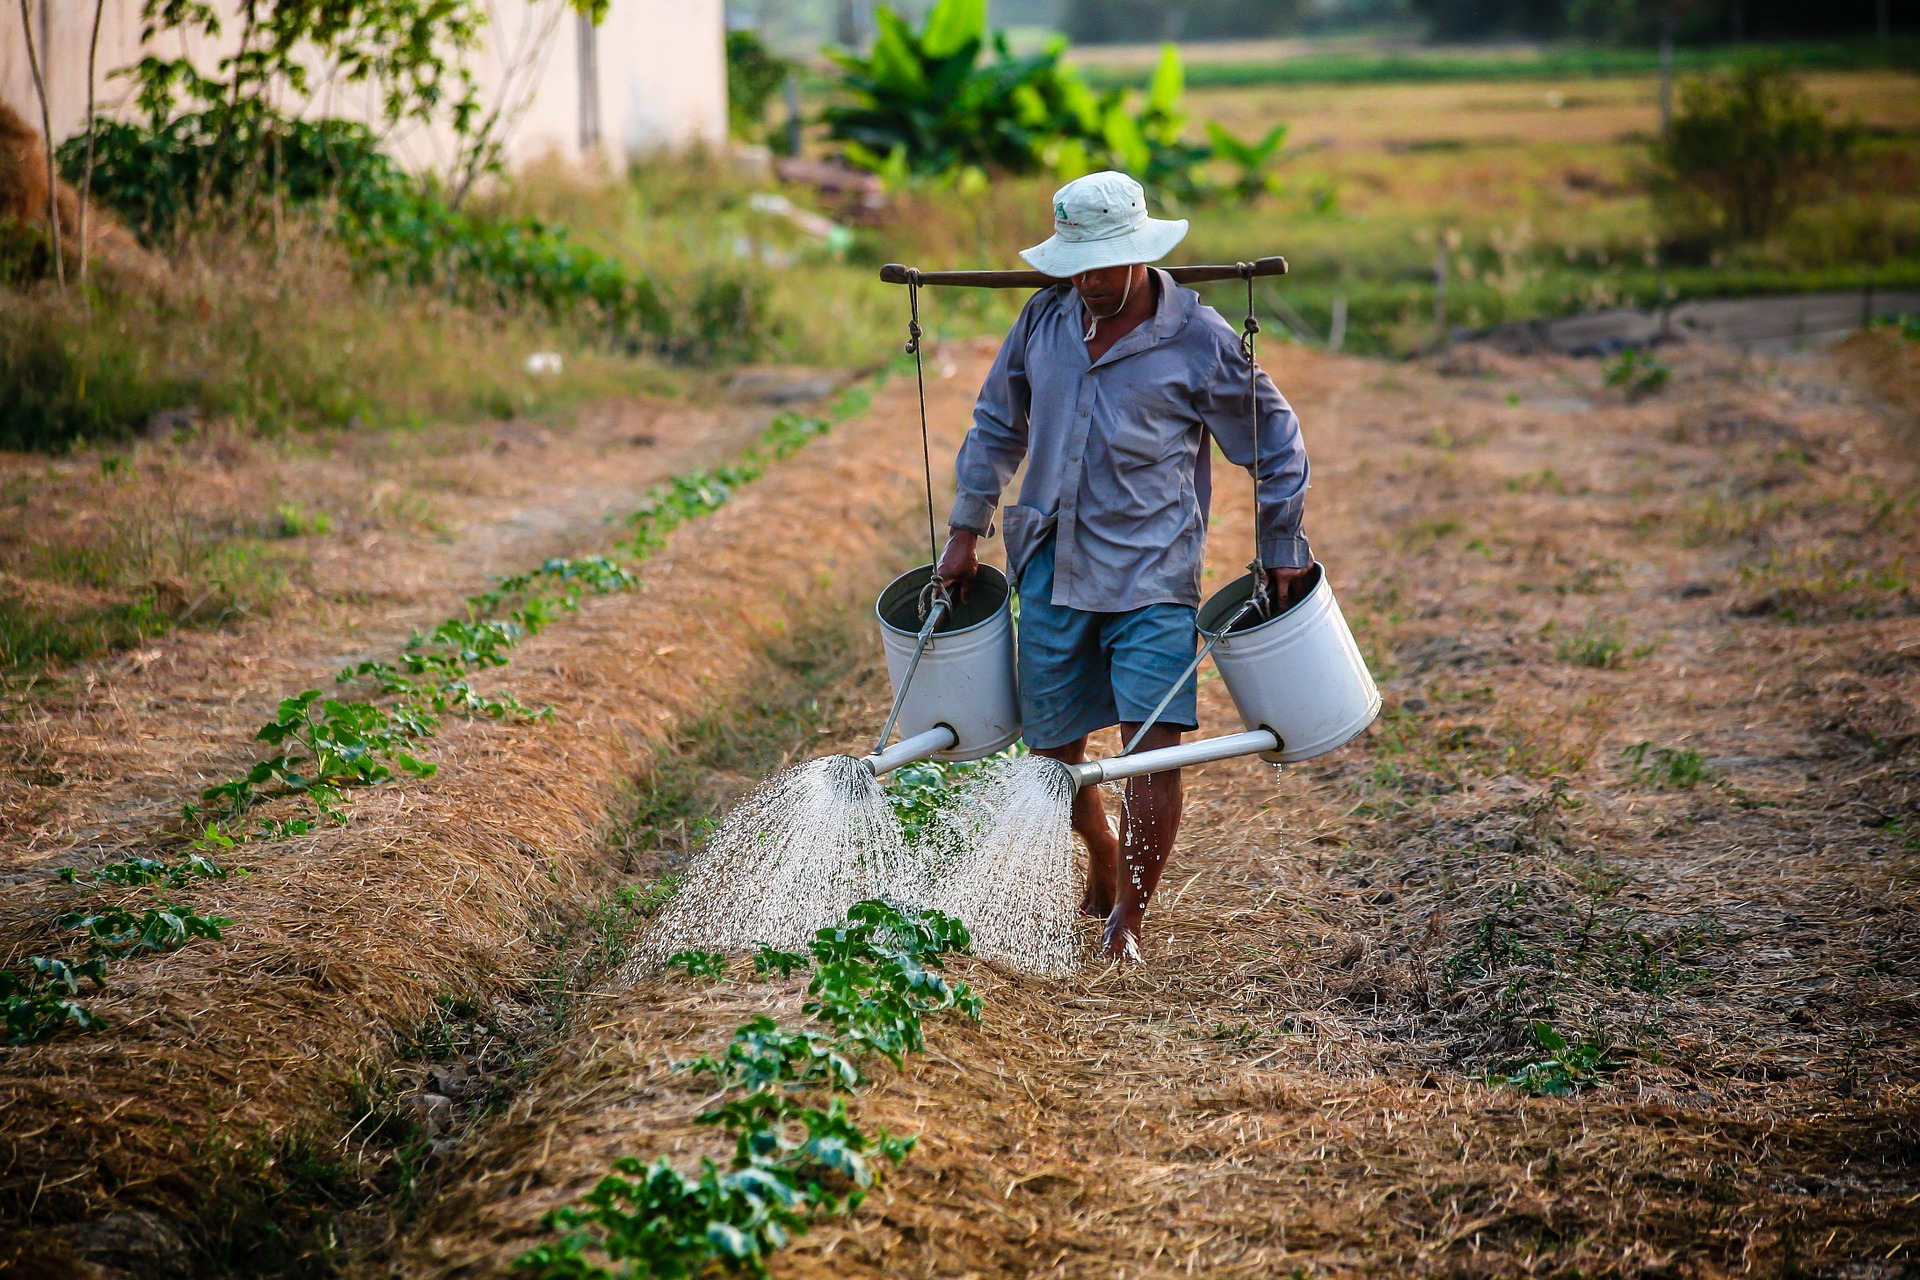 Man with watering can. Source: Pixabay